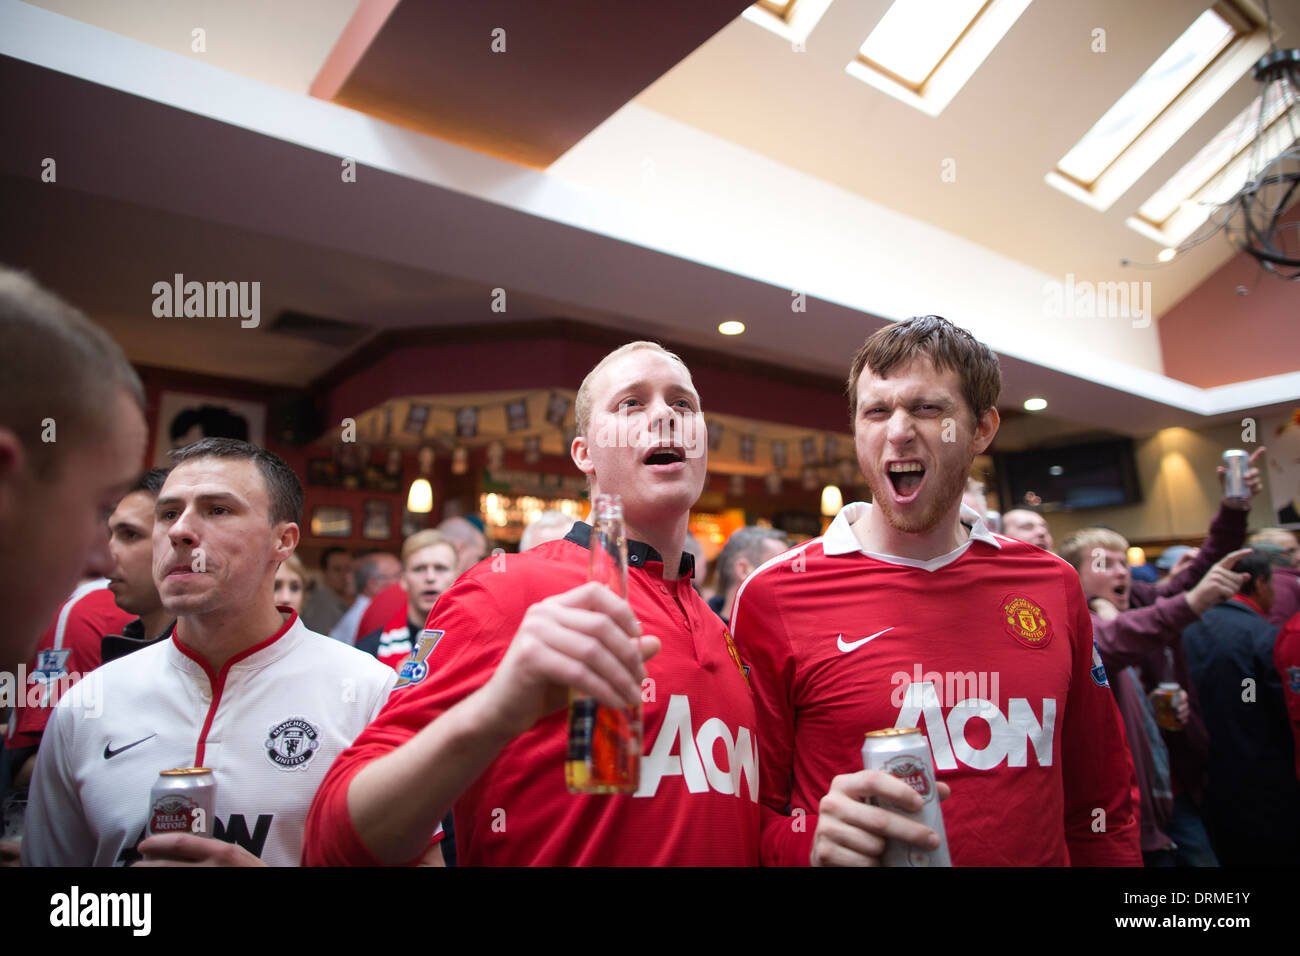 Football fans at Old Trafford in Stretford, the home of Machester United Football Club, Manchester, North England, UK - Stock Image